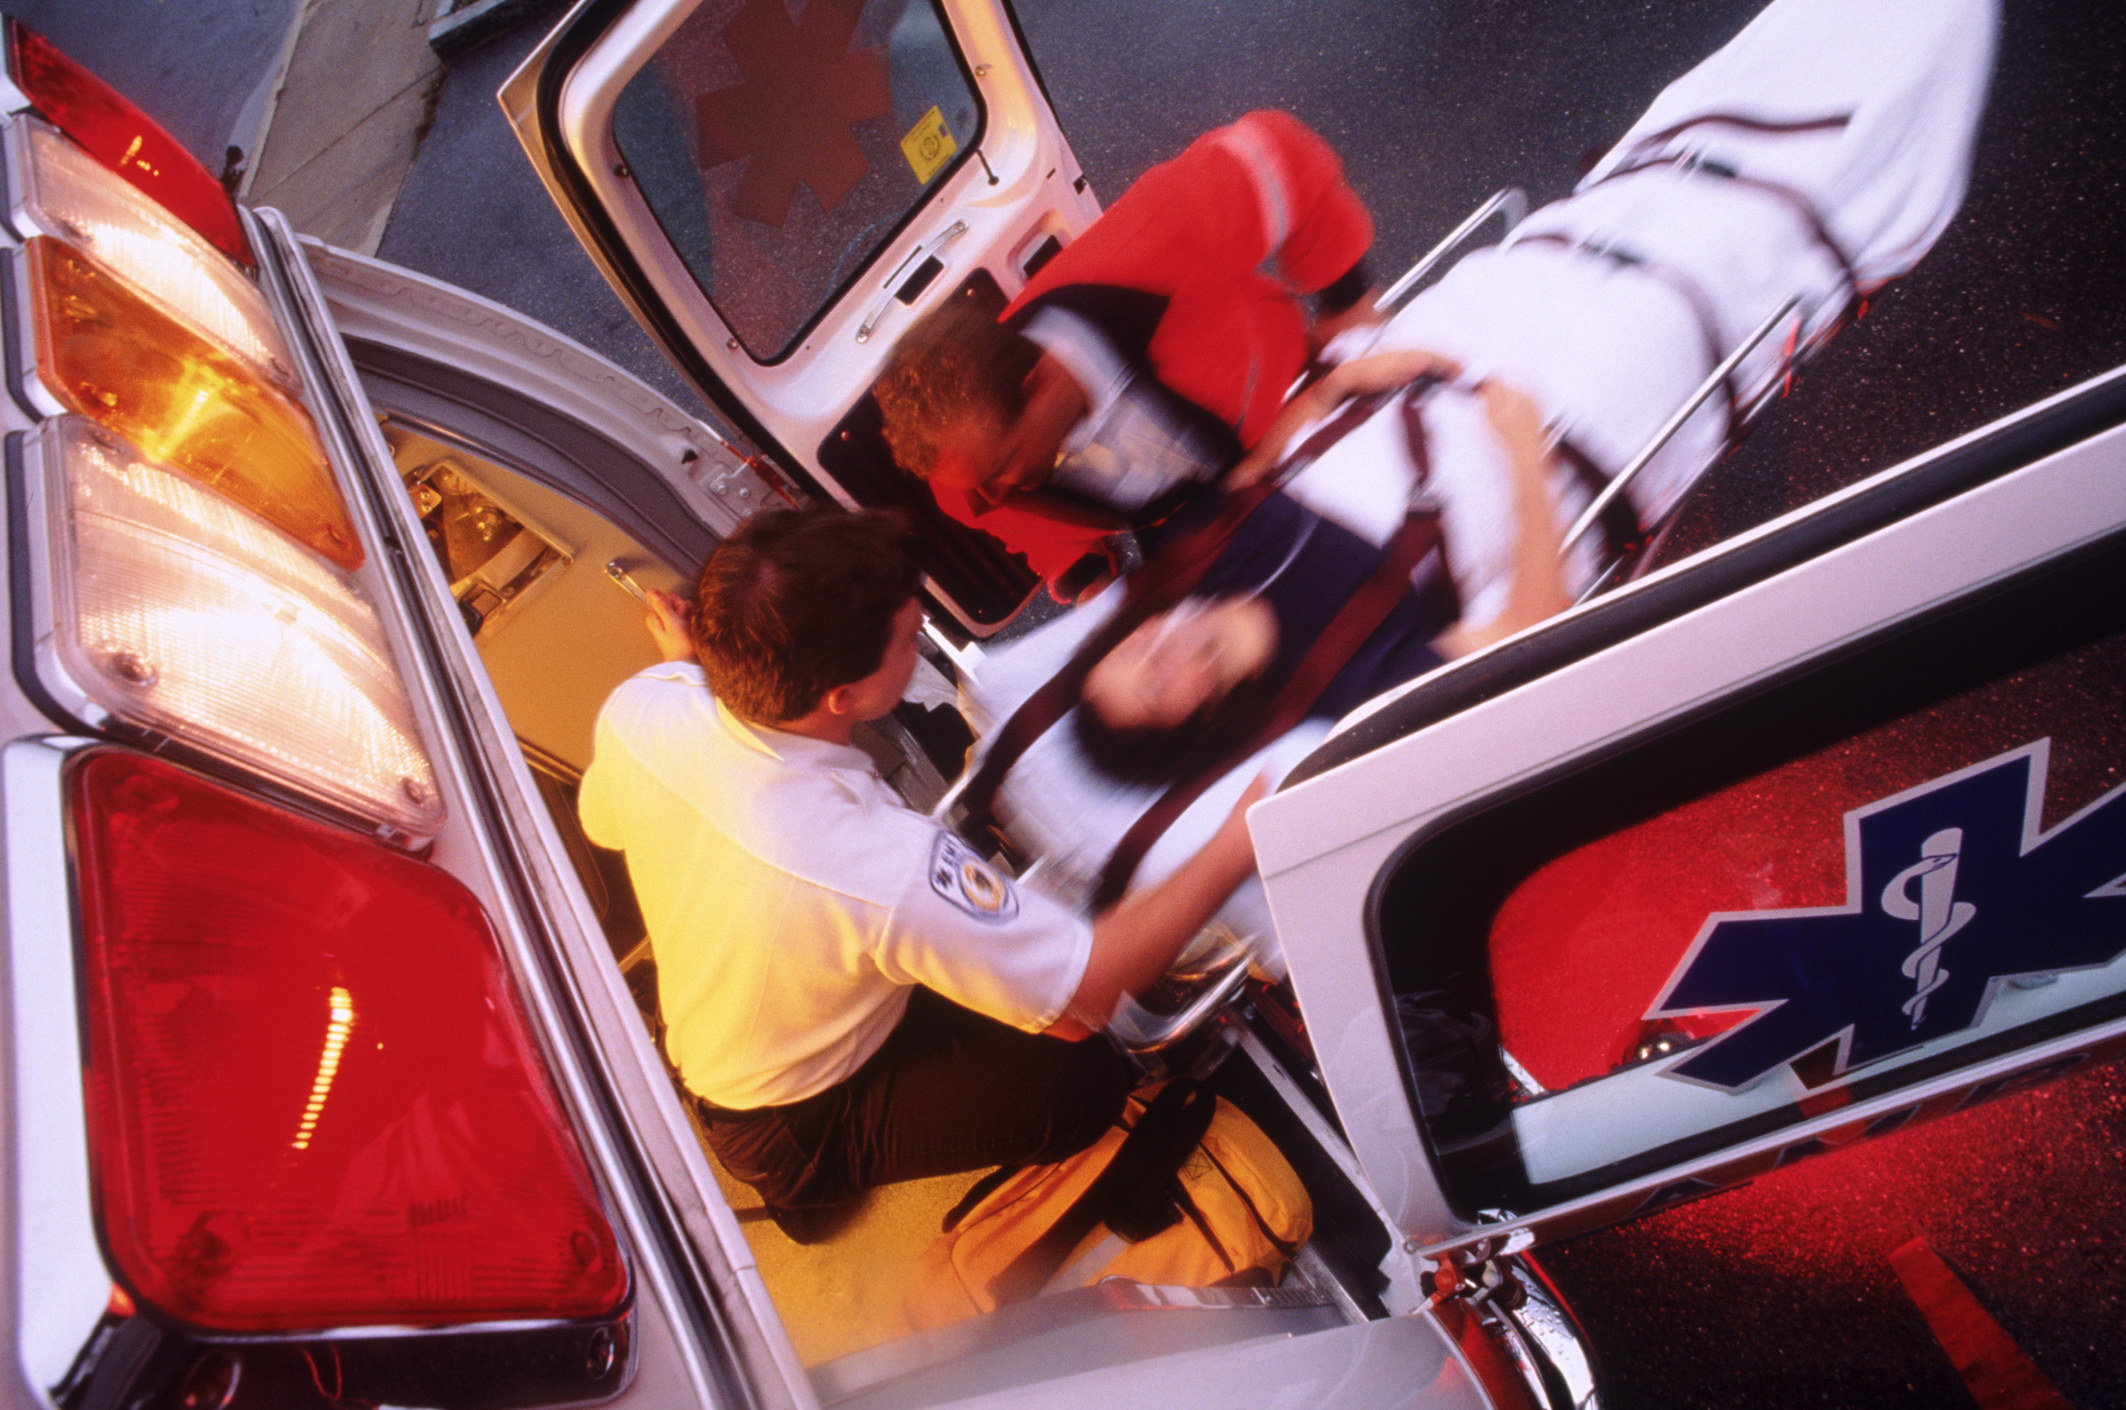 a woman being rushed into an ambulance